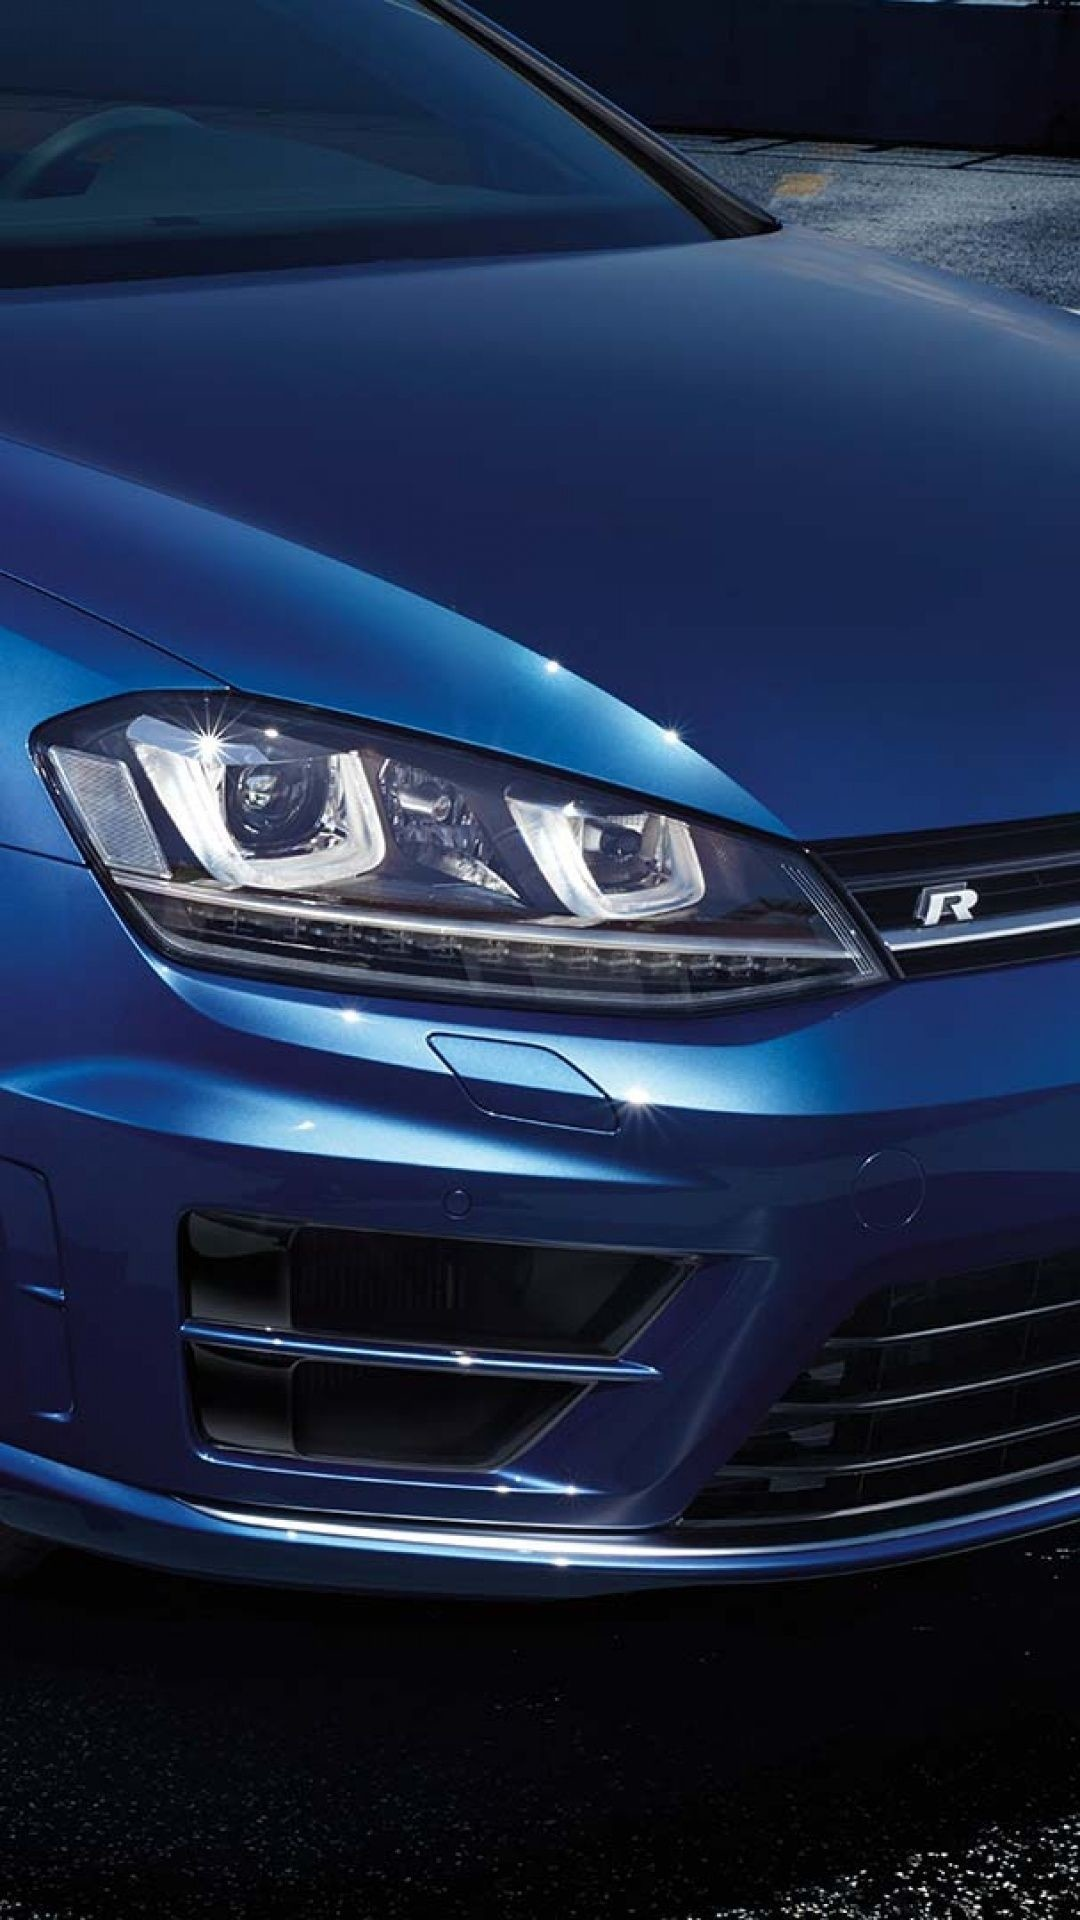 1080x1920, Golf R Wallpaper For Iphone ...